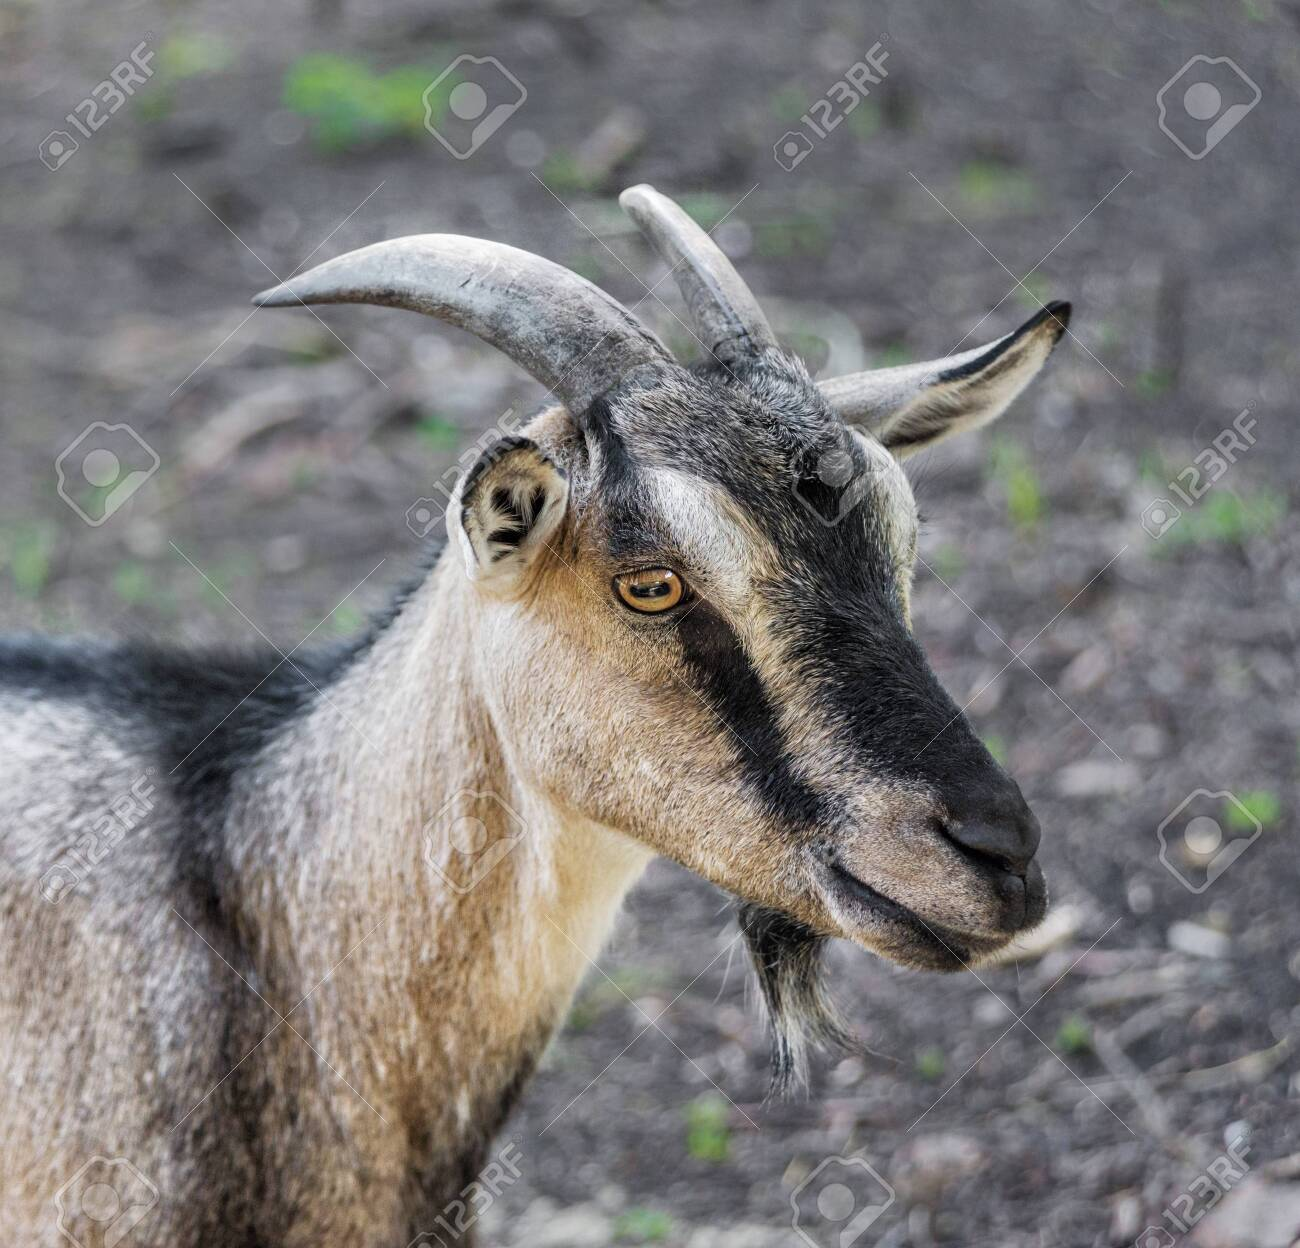 Close-up portrait of a brown domestic goat with horns outdoors - 135833709